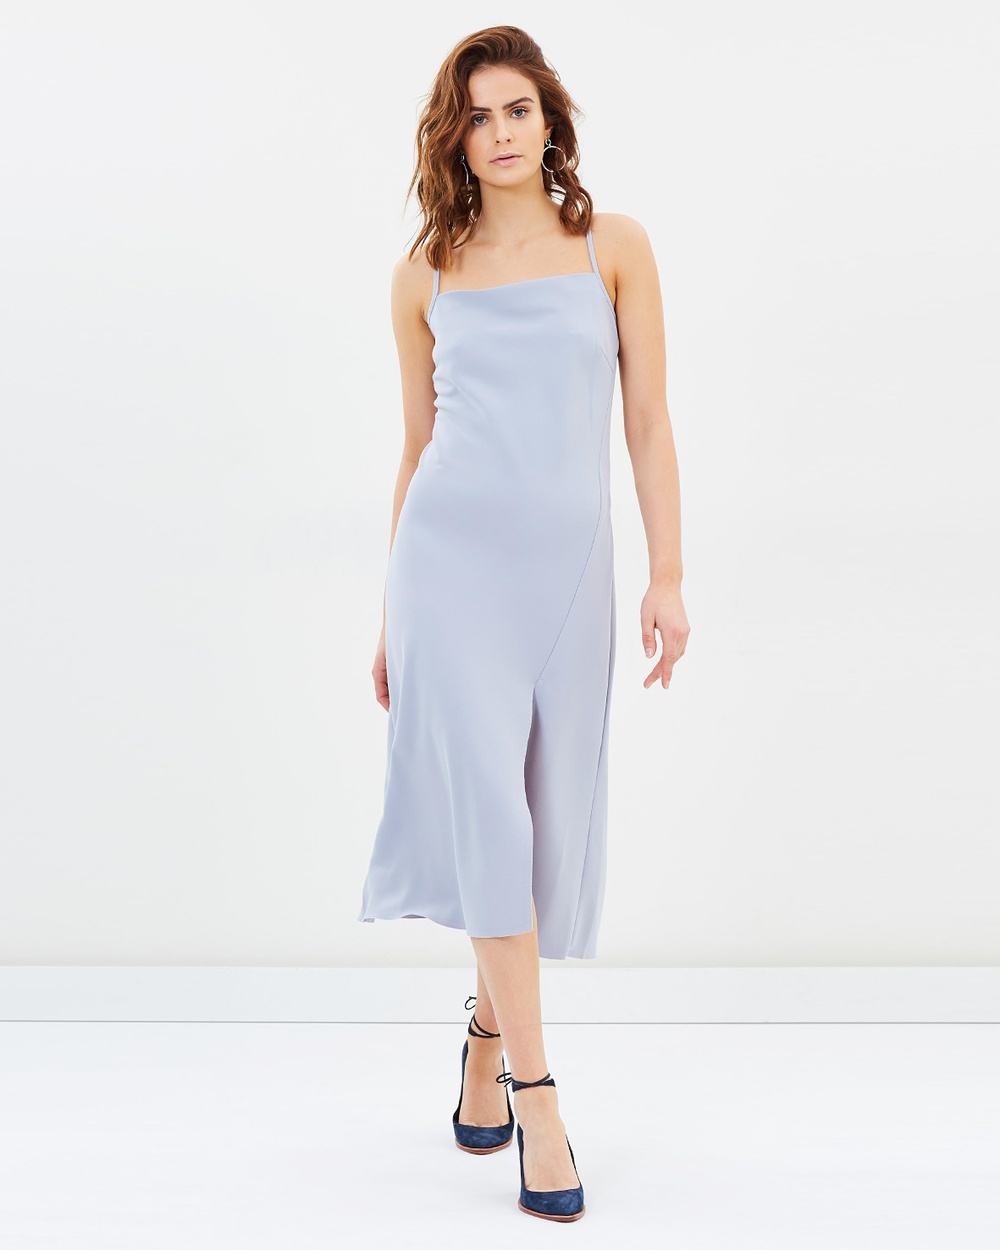 FWRD Liberty Dress Dresses Lunar Liberty Dress